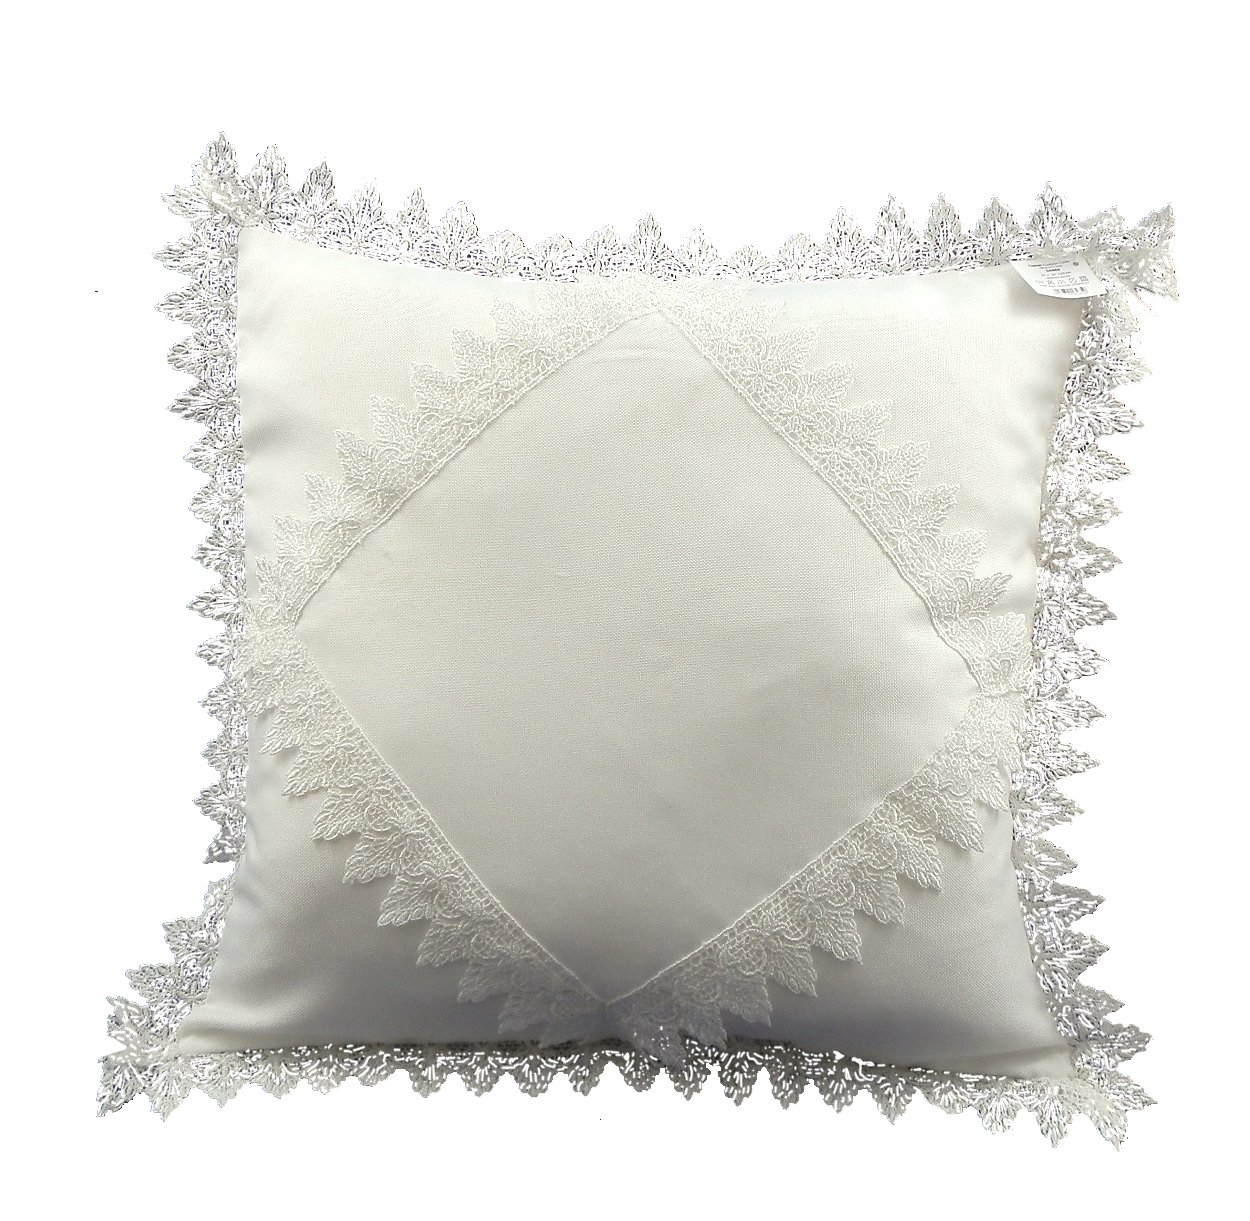 43 CM (16 INCH) SQUARE CUSHION COVER WITH FLARED FLOWER LACE EDGE AND CENTRE PANEL IN WHITE COLOUR (54469